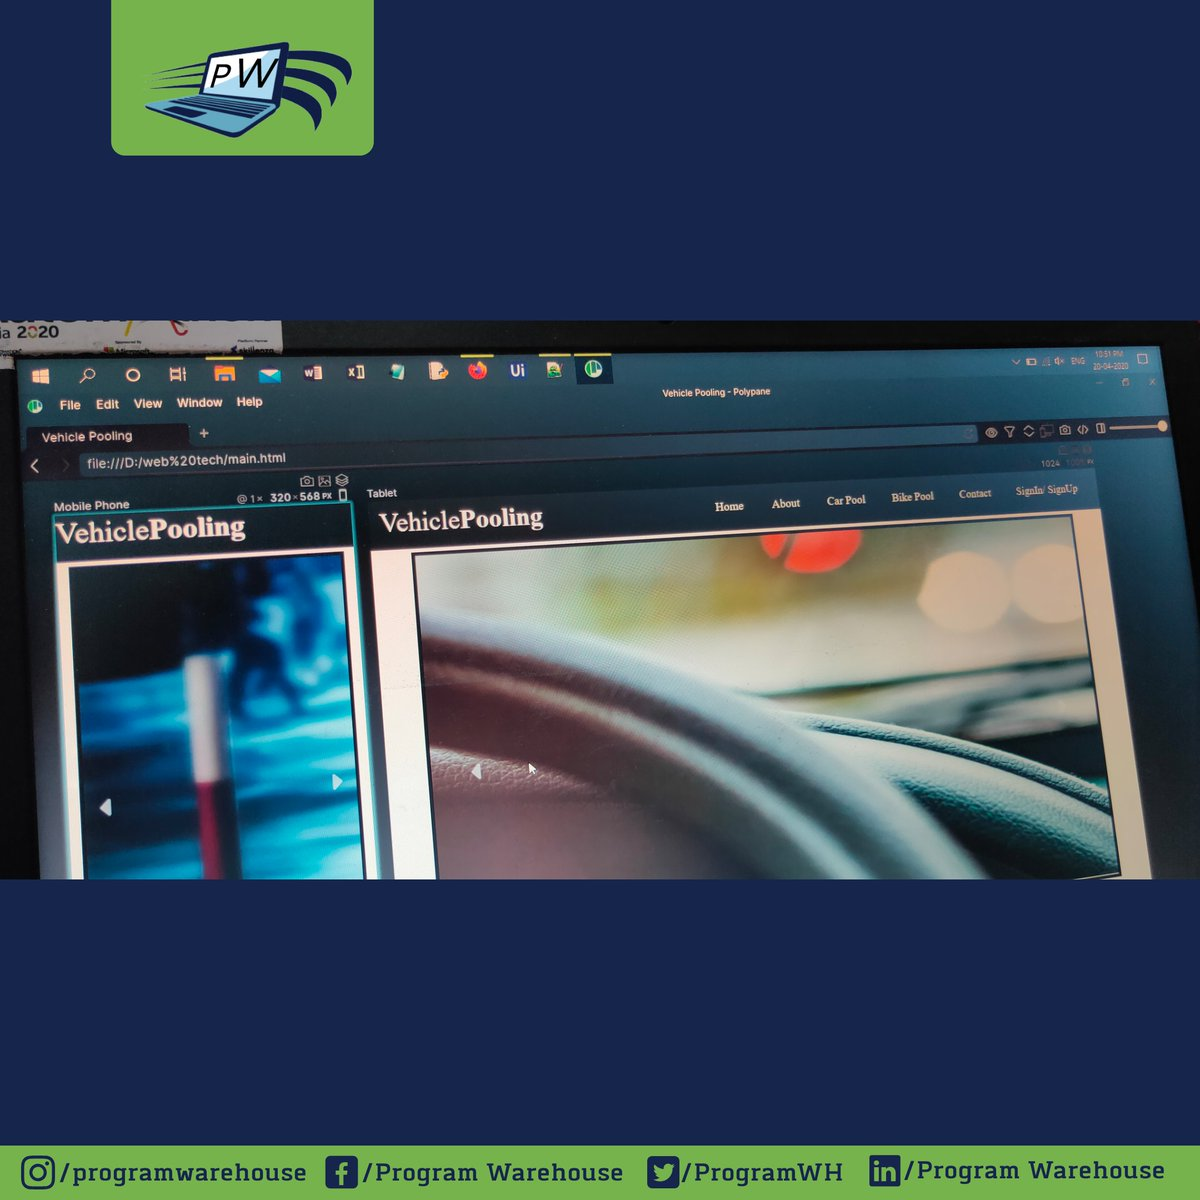 Our web developers using @polypane tools while making a responsive websites  For more information visit :  https:// programwarehouse.co /     #programwarehouse #projectwork #protectyourself #webdesigners #websitedesigns #websitebuilder #websitedeveloper #websitelaunch<br>http://pic.twitter.com/1Zj9S9aXHu